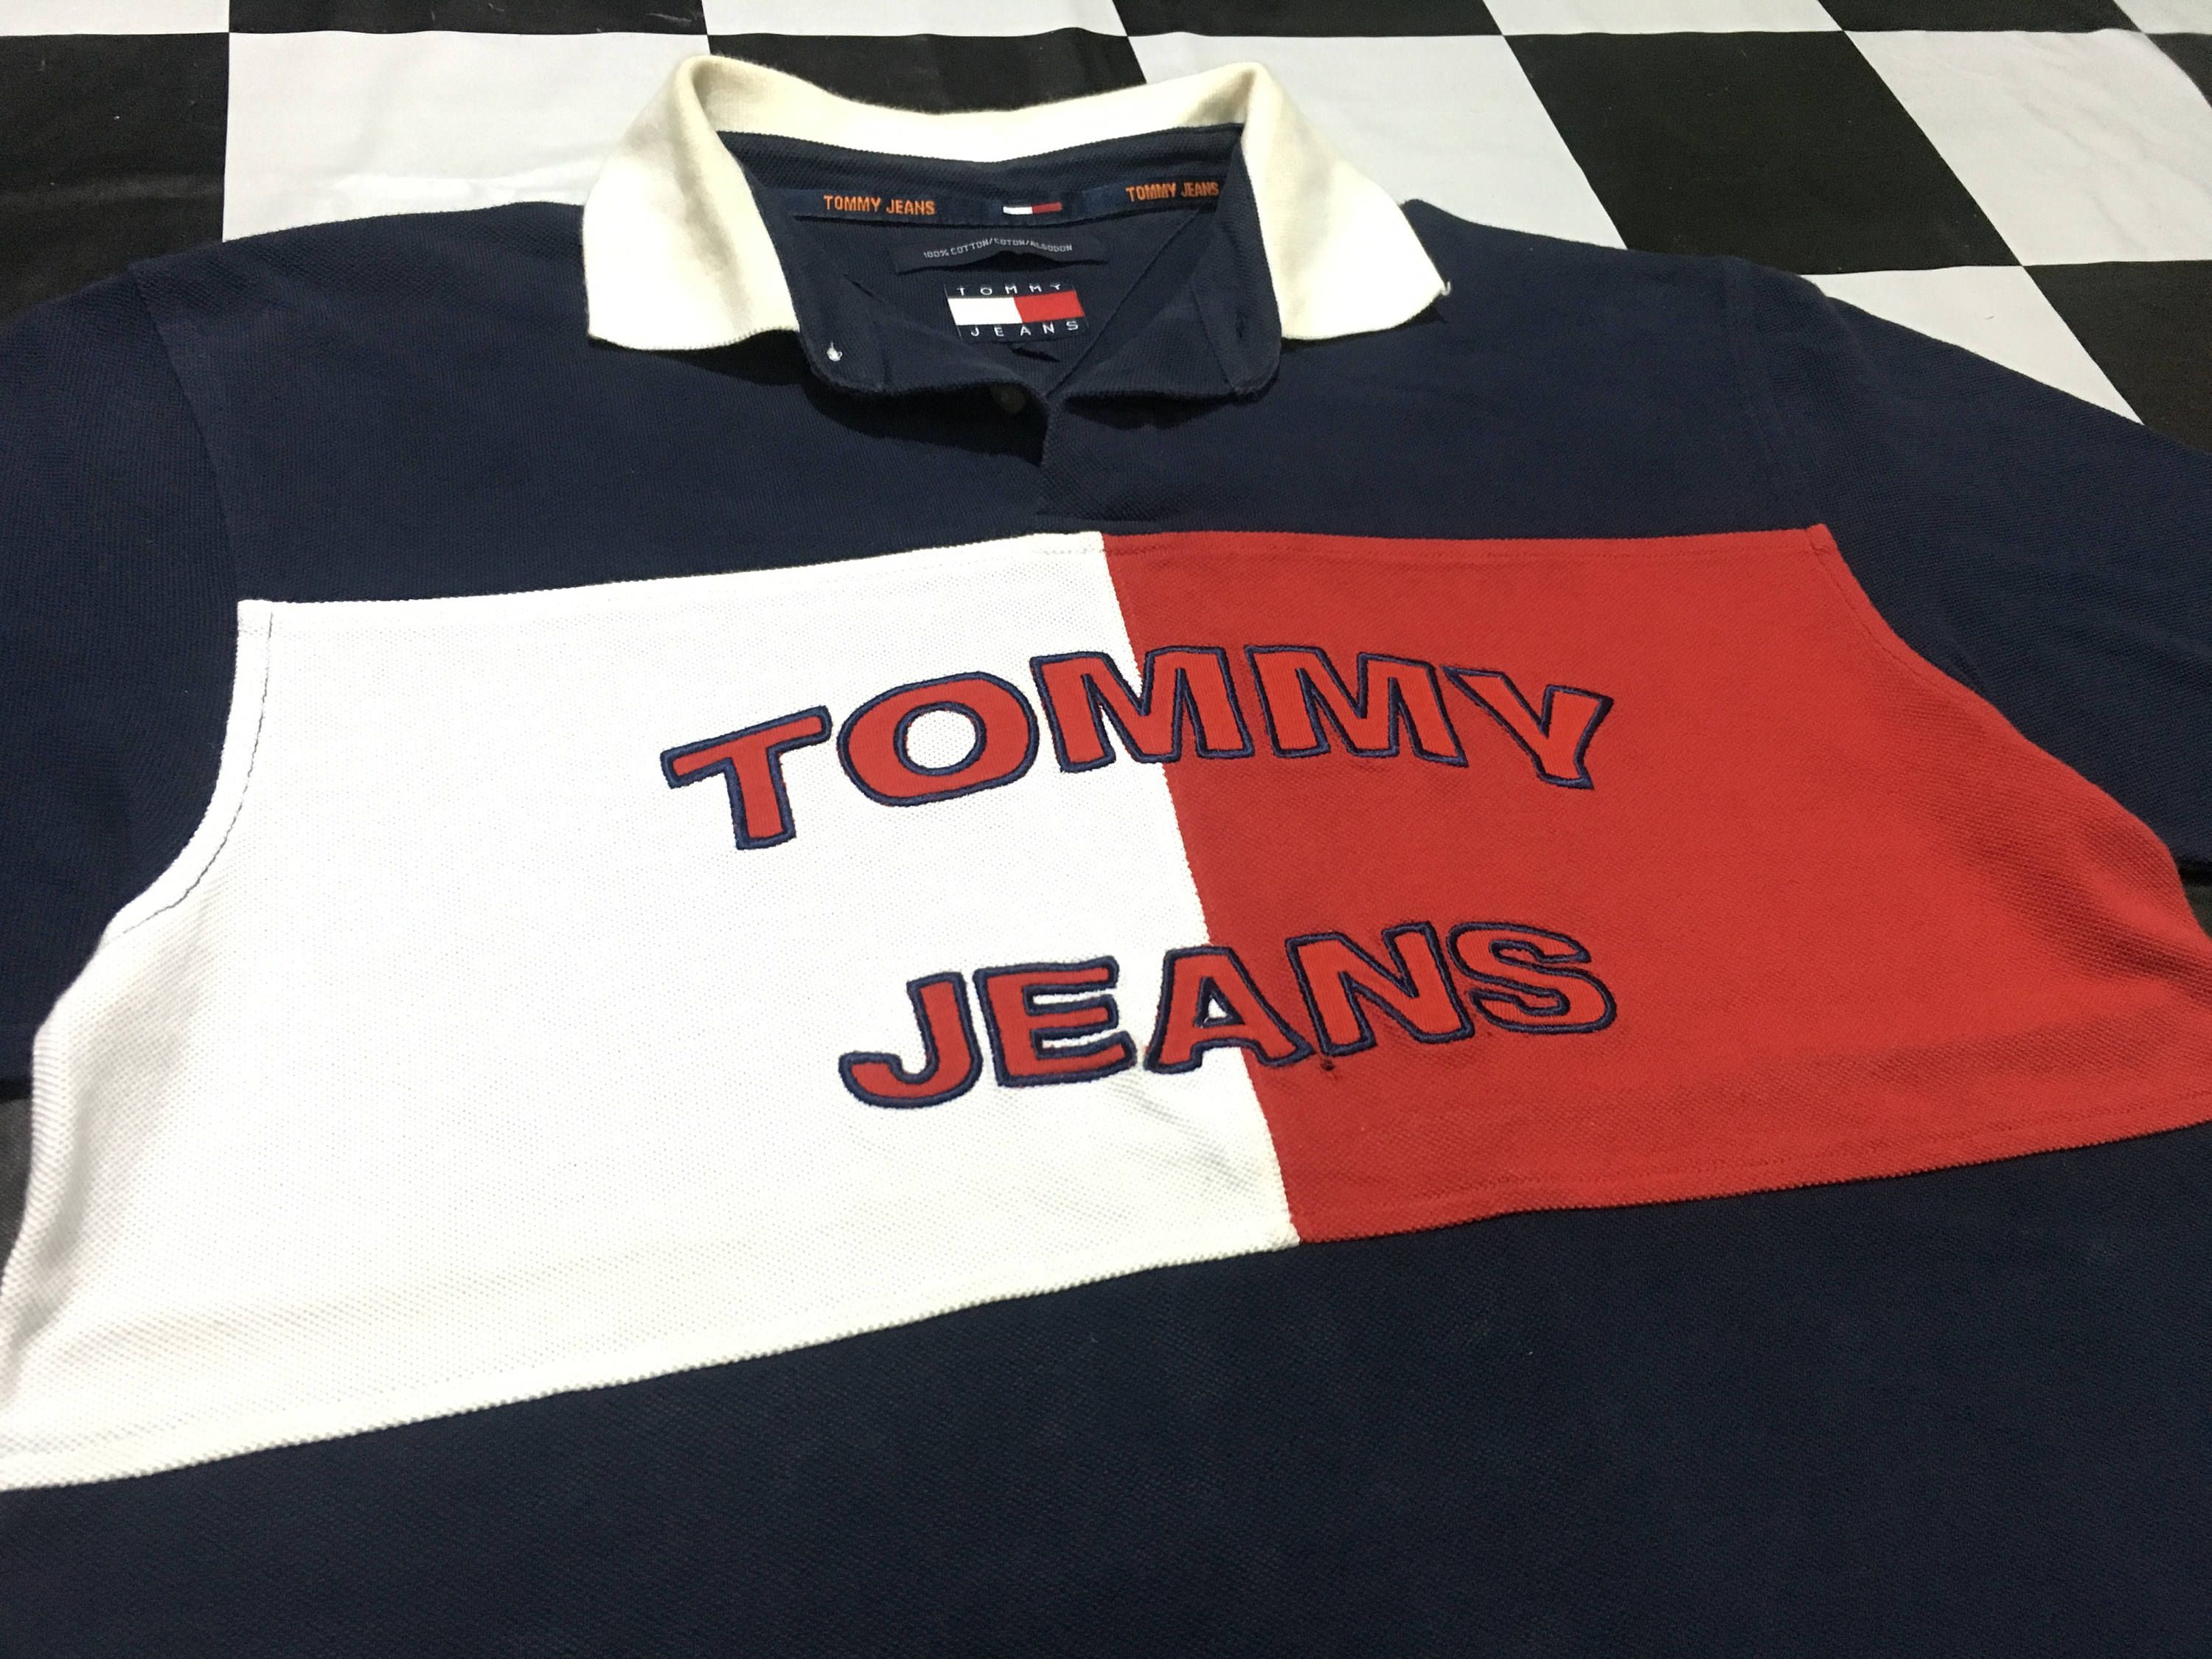 c7b79bc7 Vintage Tommy Jeans polo t shirt full color block big flag logo Size M  Excellent condition Tommy Hilfiger by AlivevintageShop on Etsy